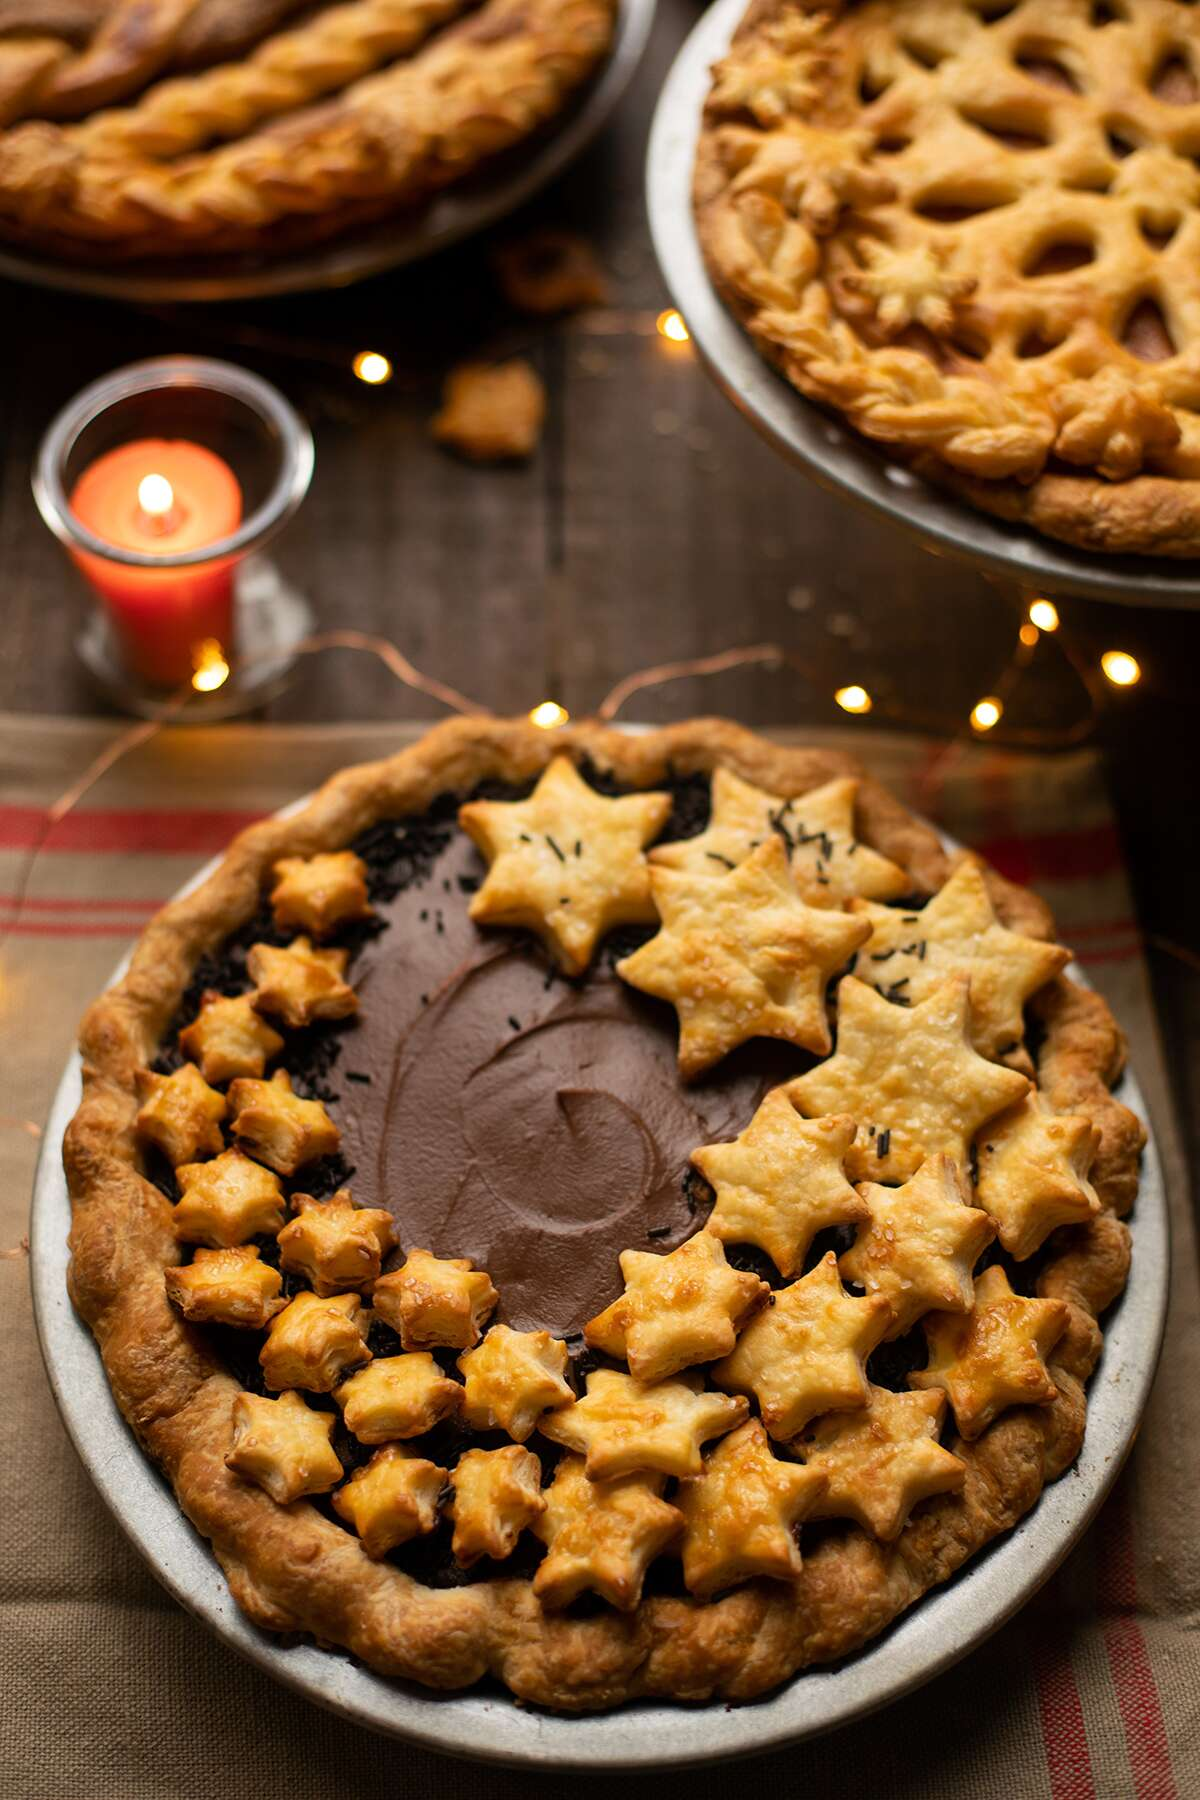 Chocolate cream pie with star-shaped pie crust cutouts on top